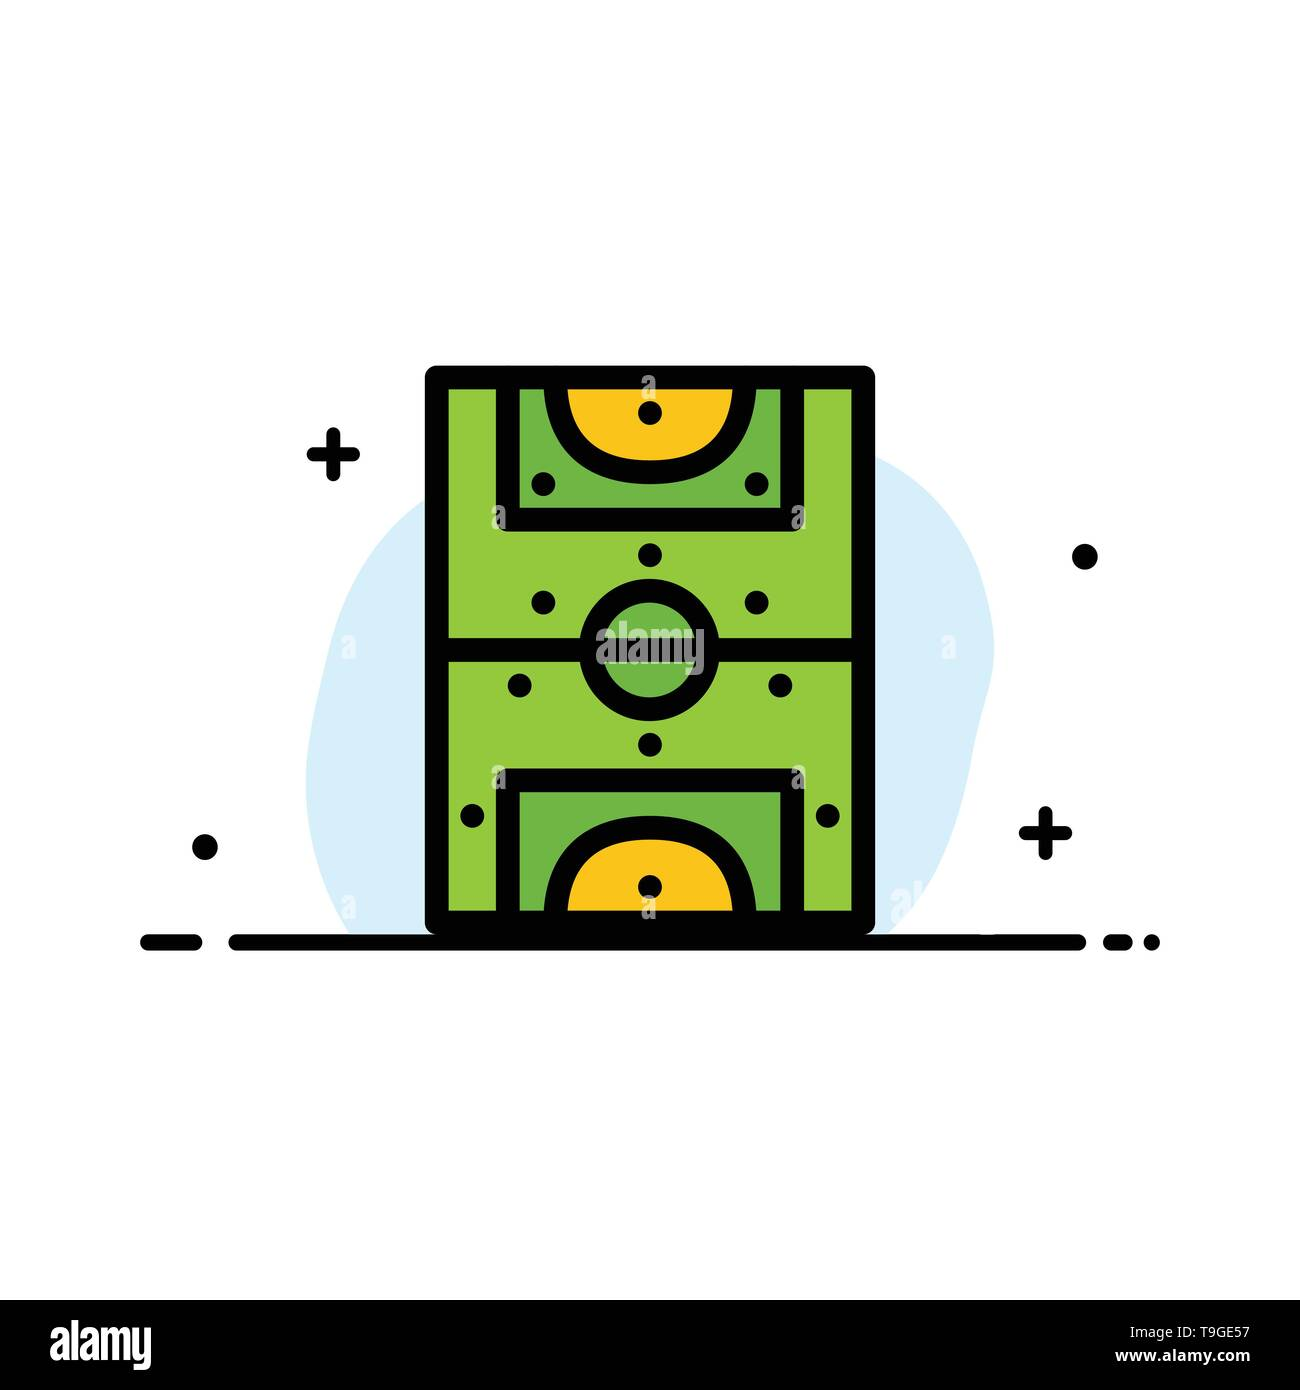 Entertainment, Game, Football, Field  Business Flat Line Filled Icon Vector Banner Template - Stock Image